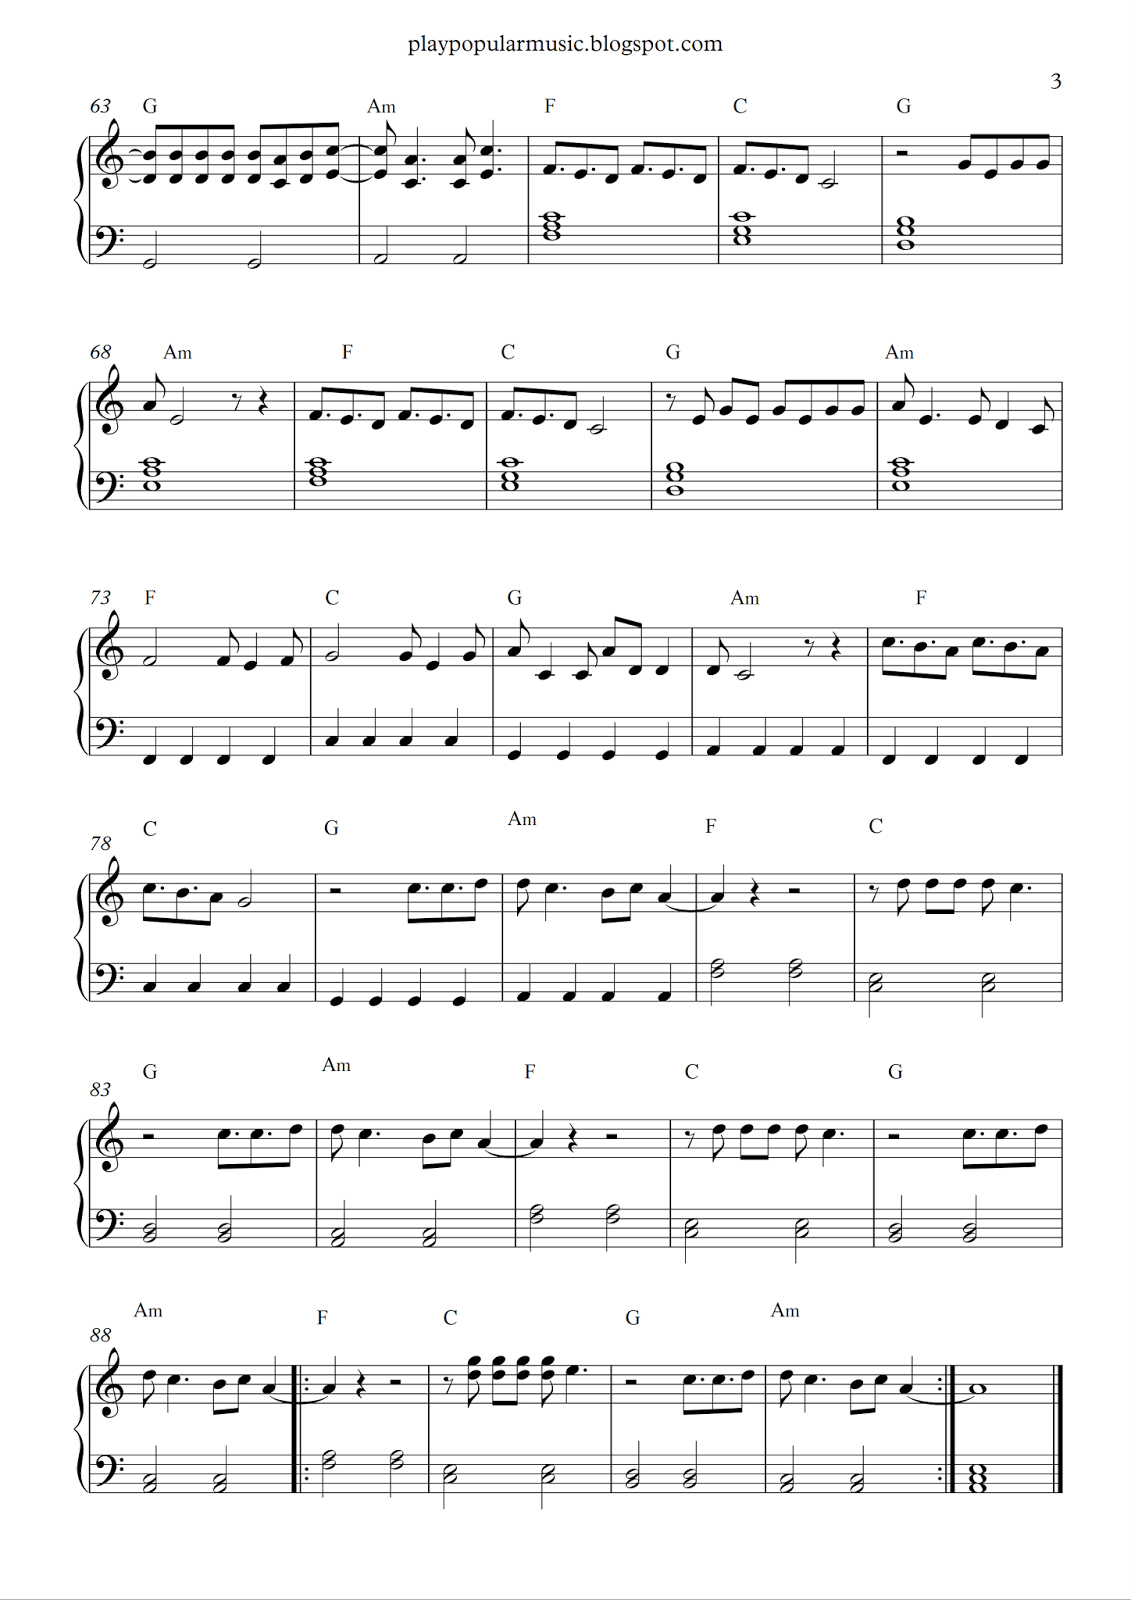 Free piano sheet music the chainsmokers dont let me down ft free piano sheet music the chainsmokers dont let me down ftpdf i hope that youll be here when i need you the most hexwebz Image collections